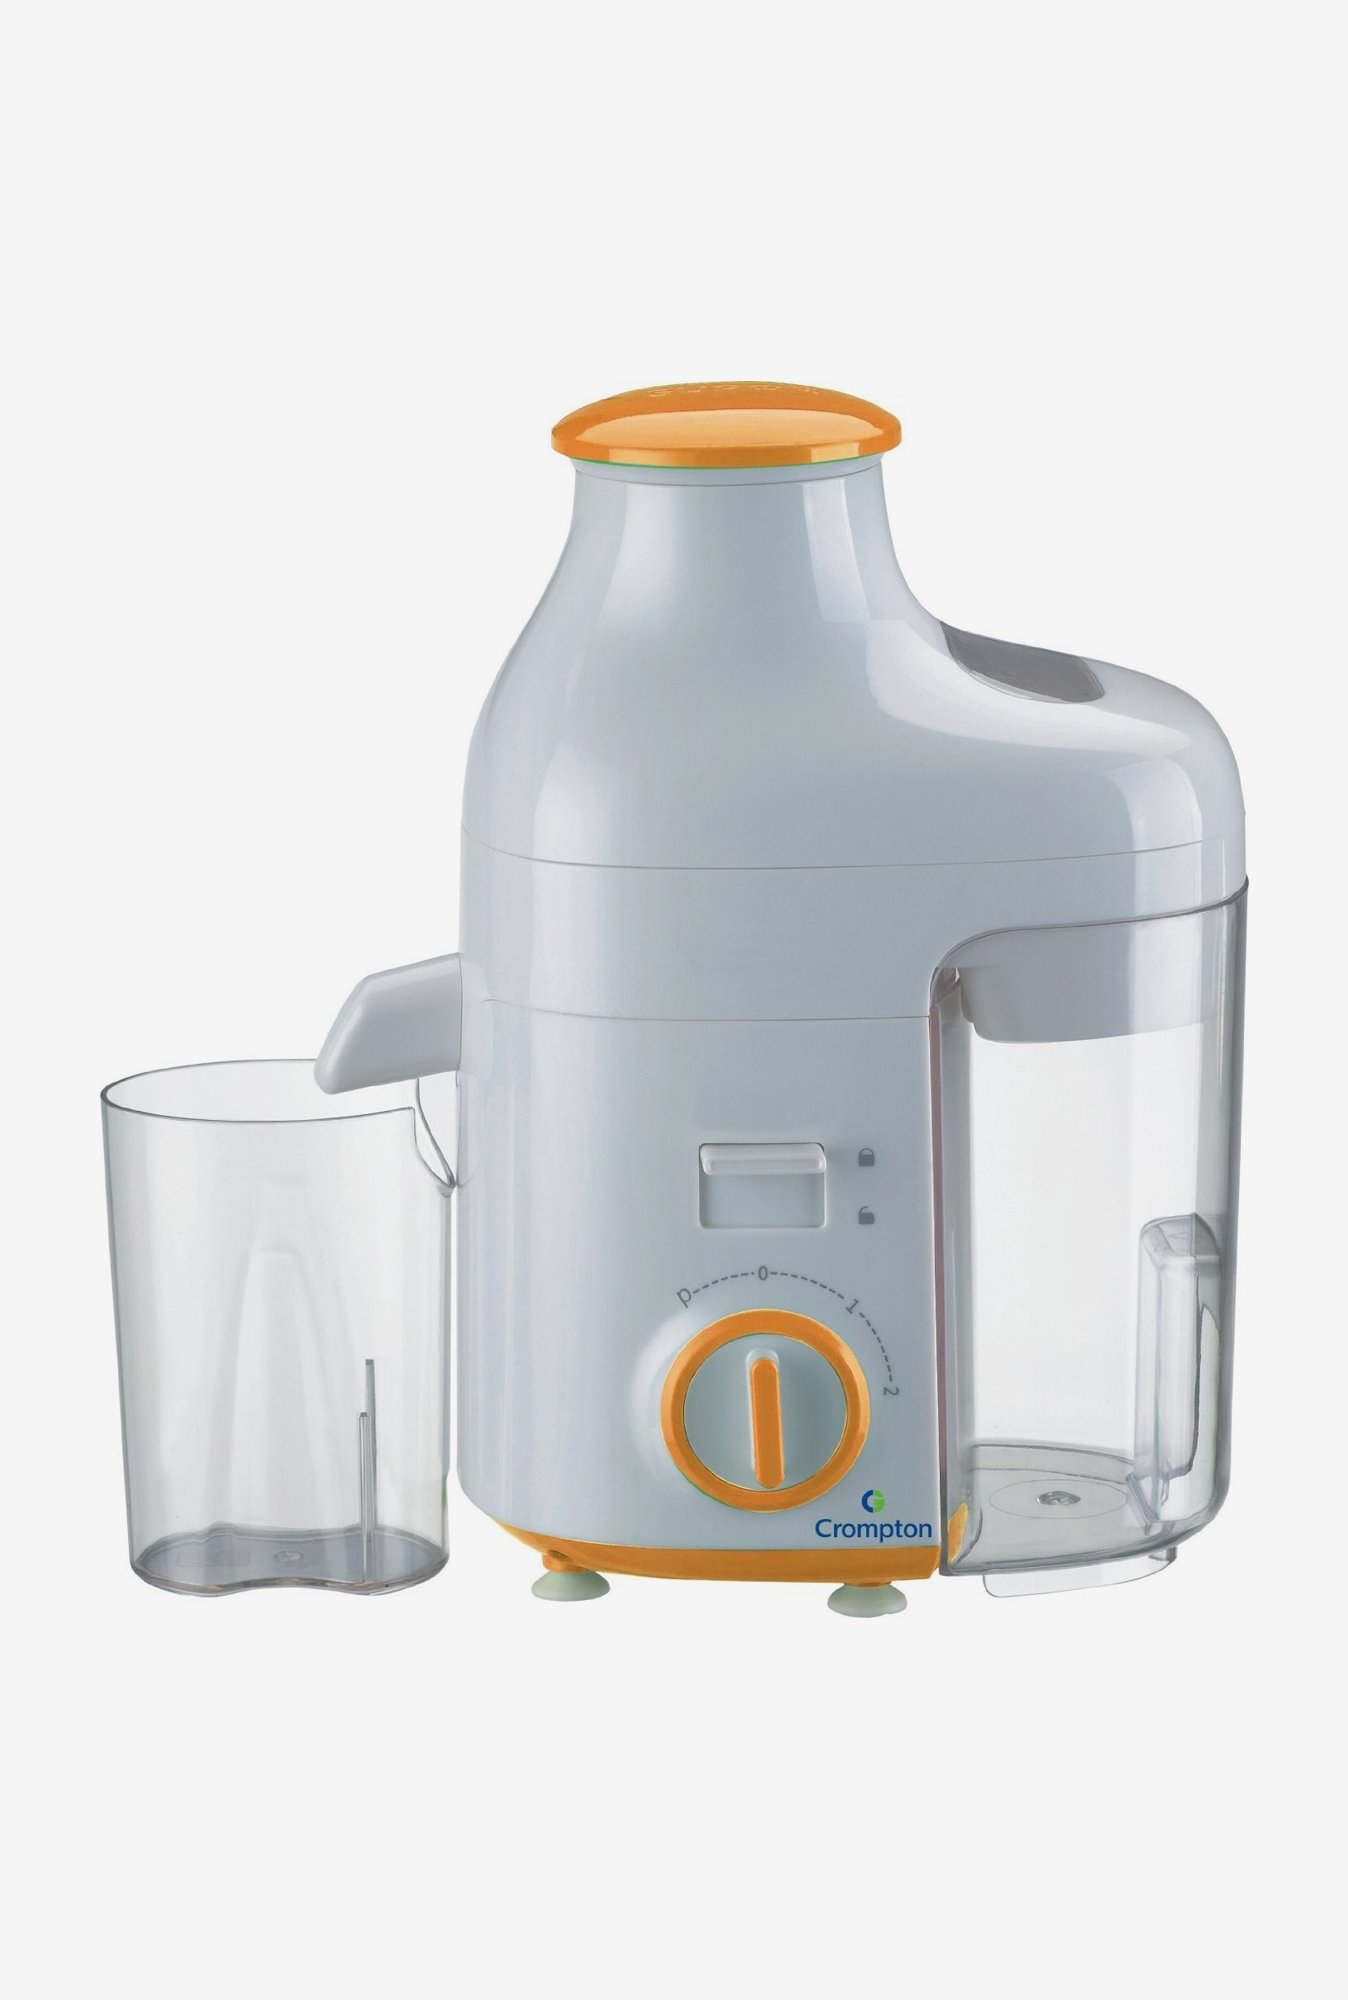 Crompton ACGJE-JES2O-I Juicer Extractor with 0.95 Litre Pulp Collector